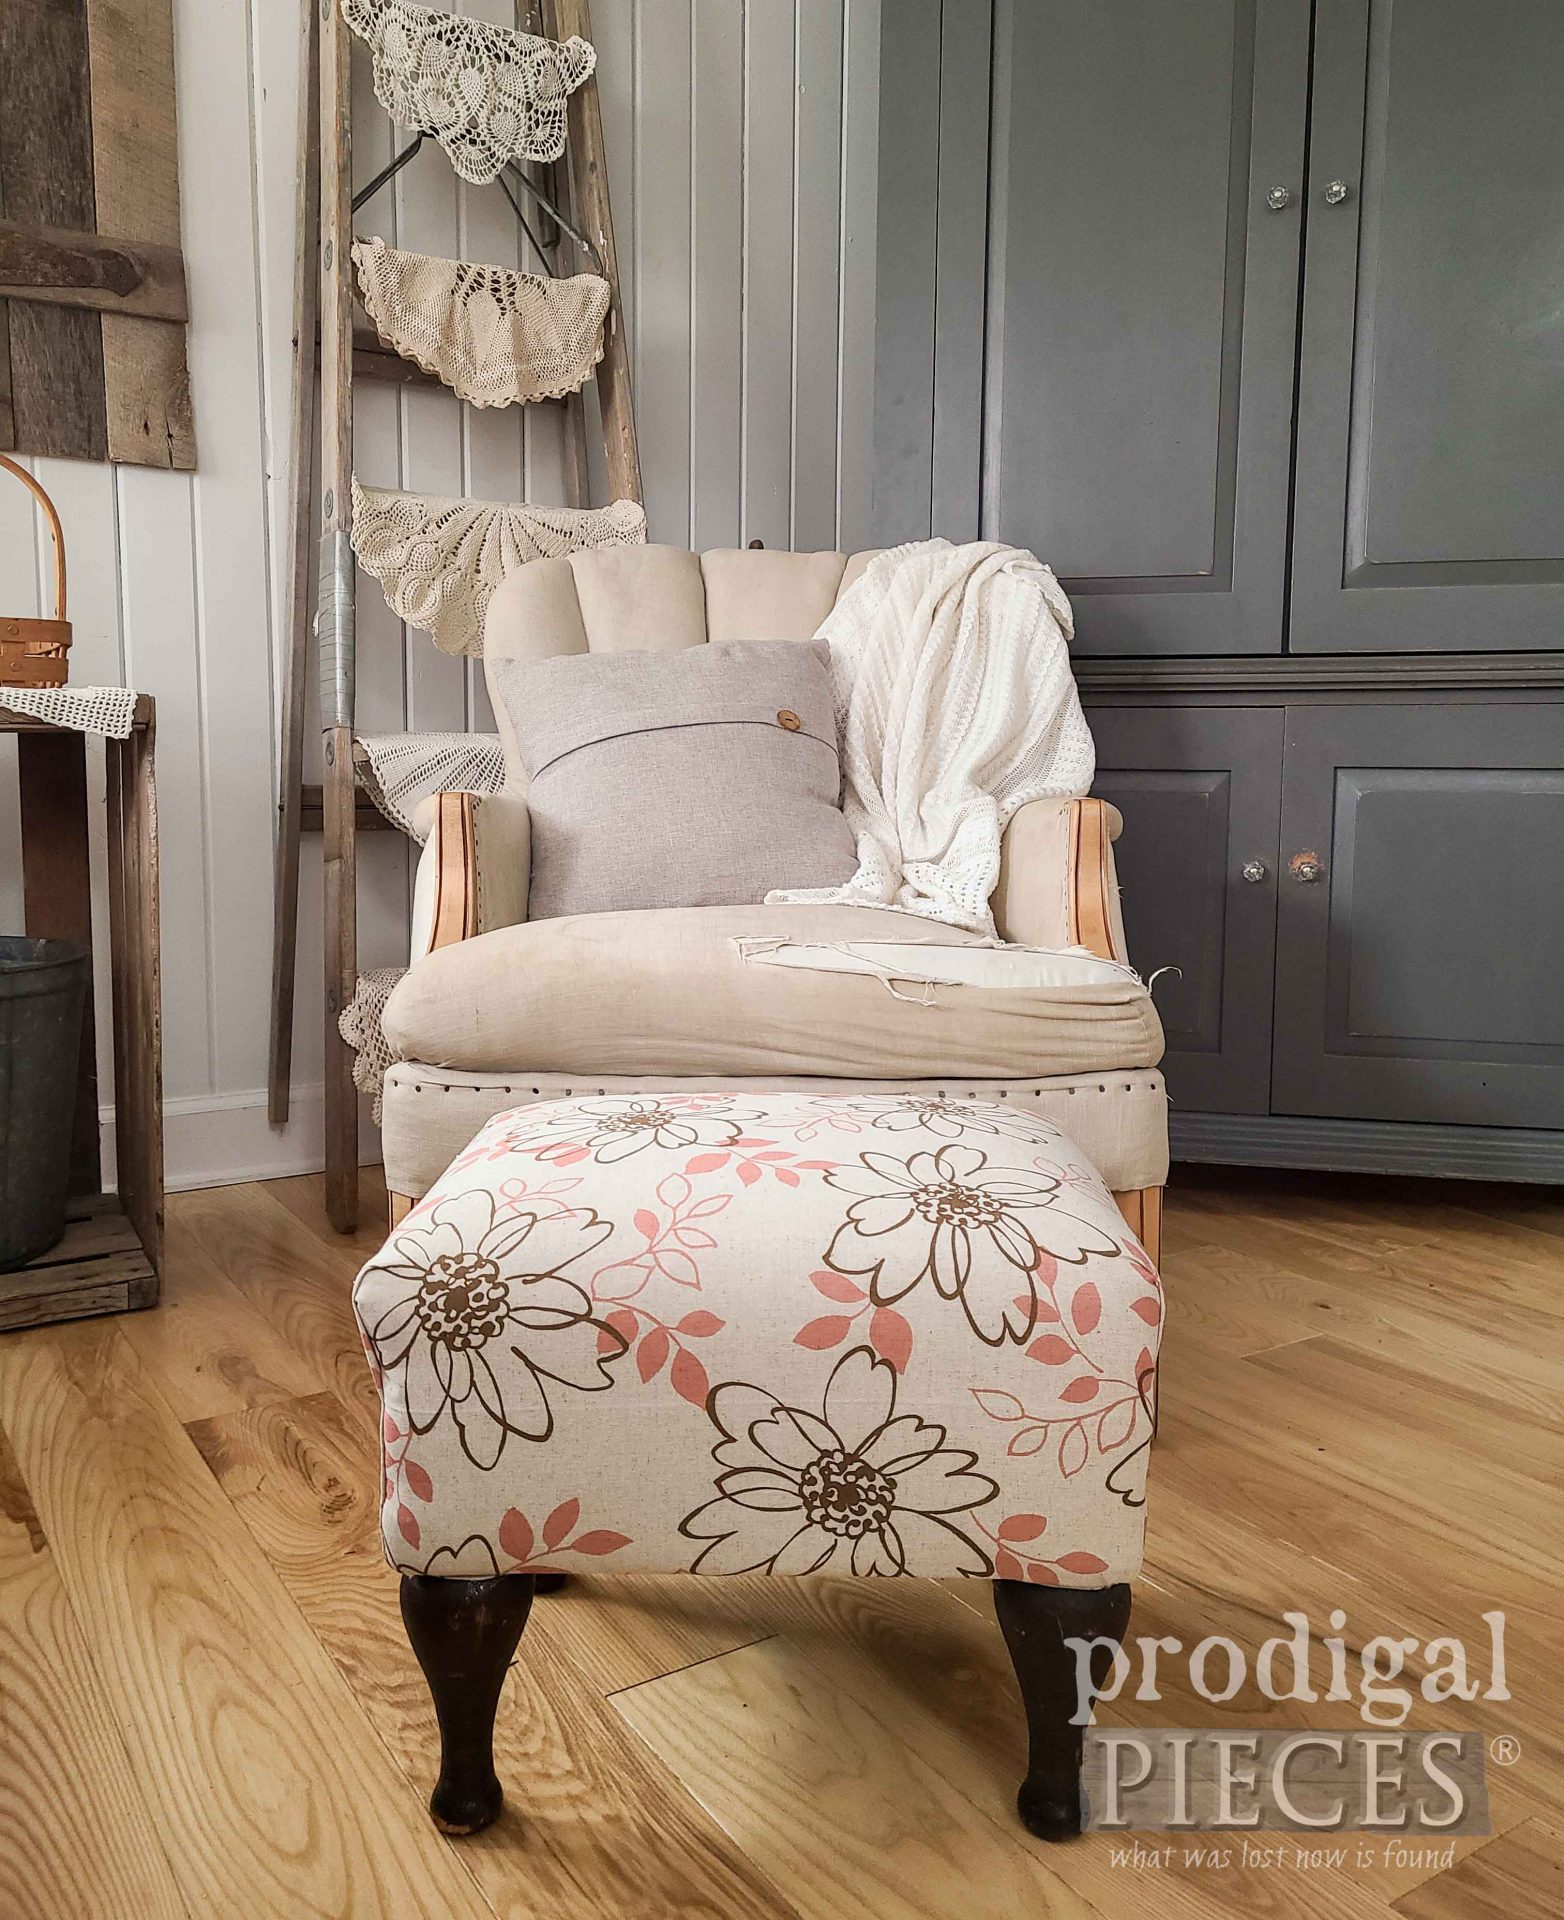 Vintage Vinyl Footstool with Refreshed Makeover by Larissa of Prodigal Pieces | prodigalpieces.com #prodigalpieces #furniture #vintage #home #homedecor